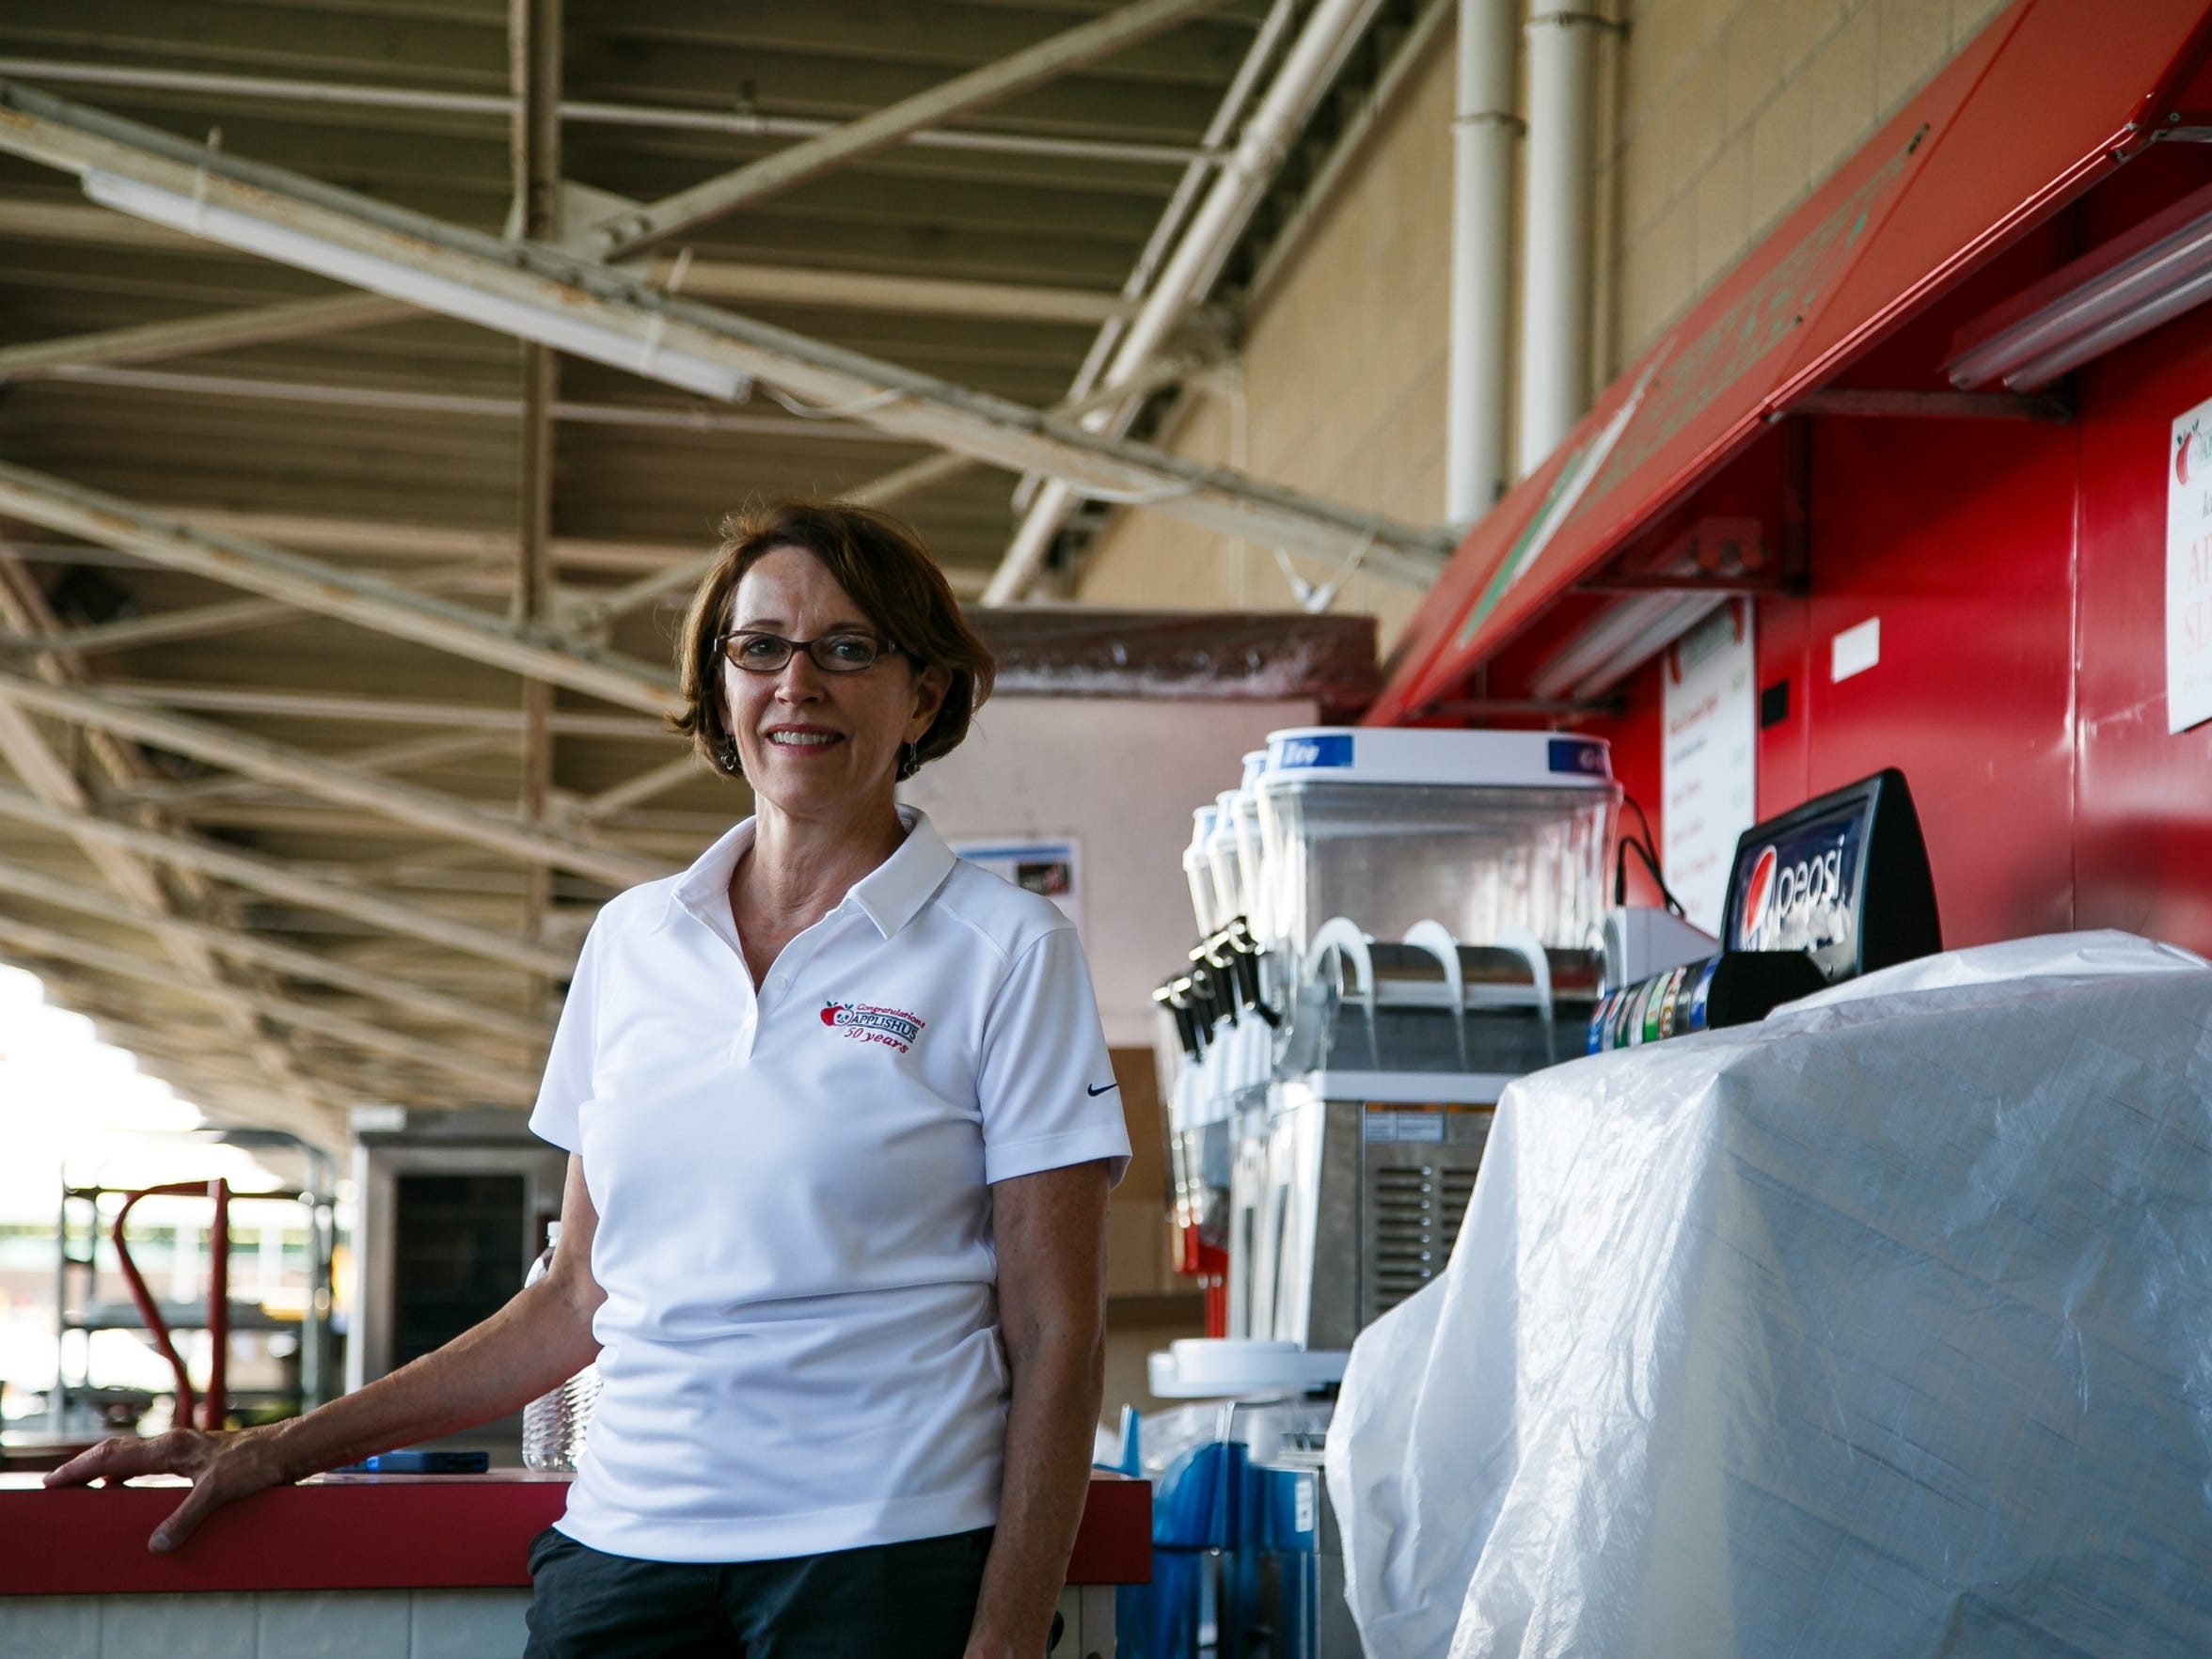 Connie Boesen has been working at the State Fair for